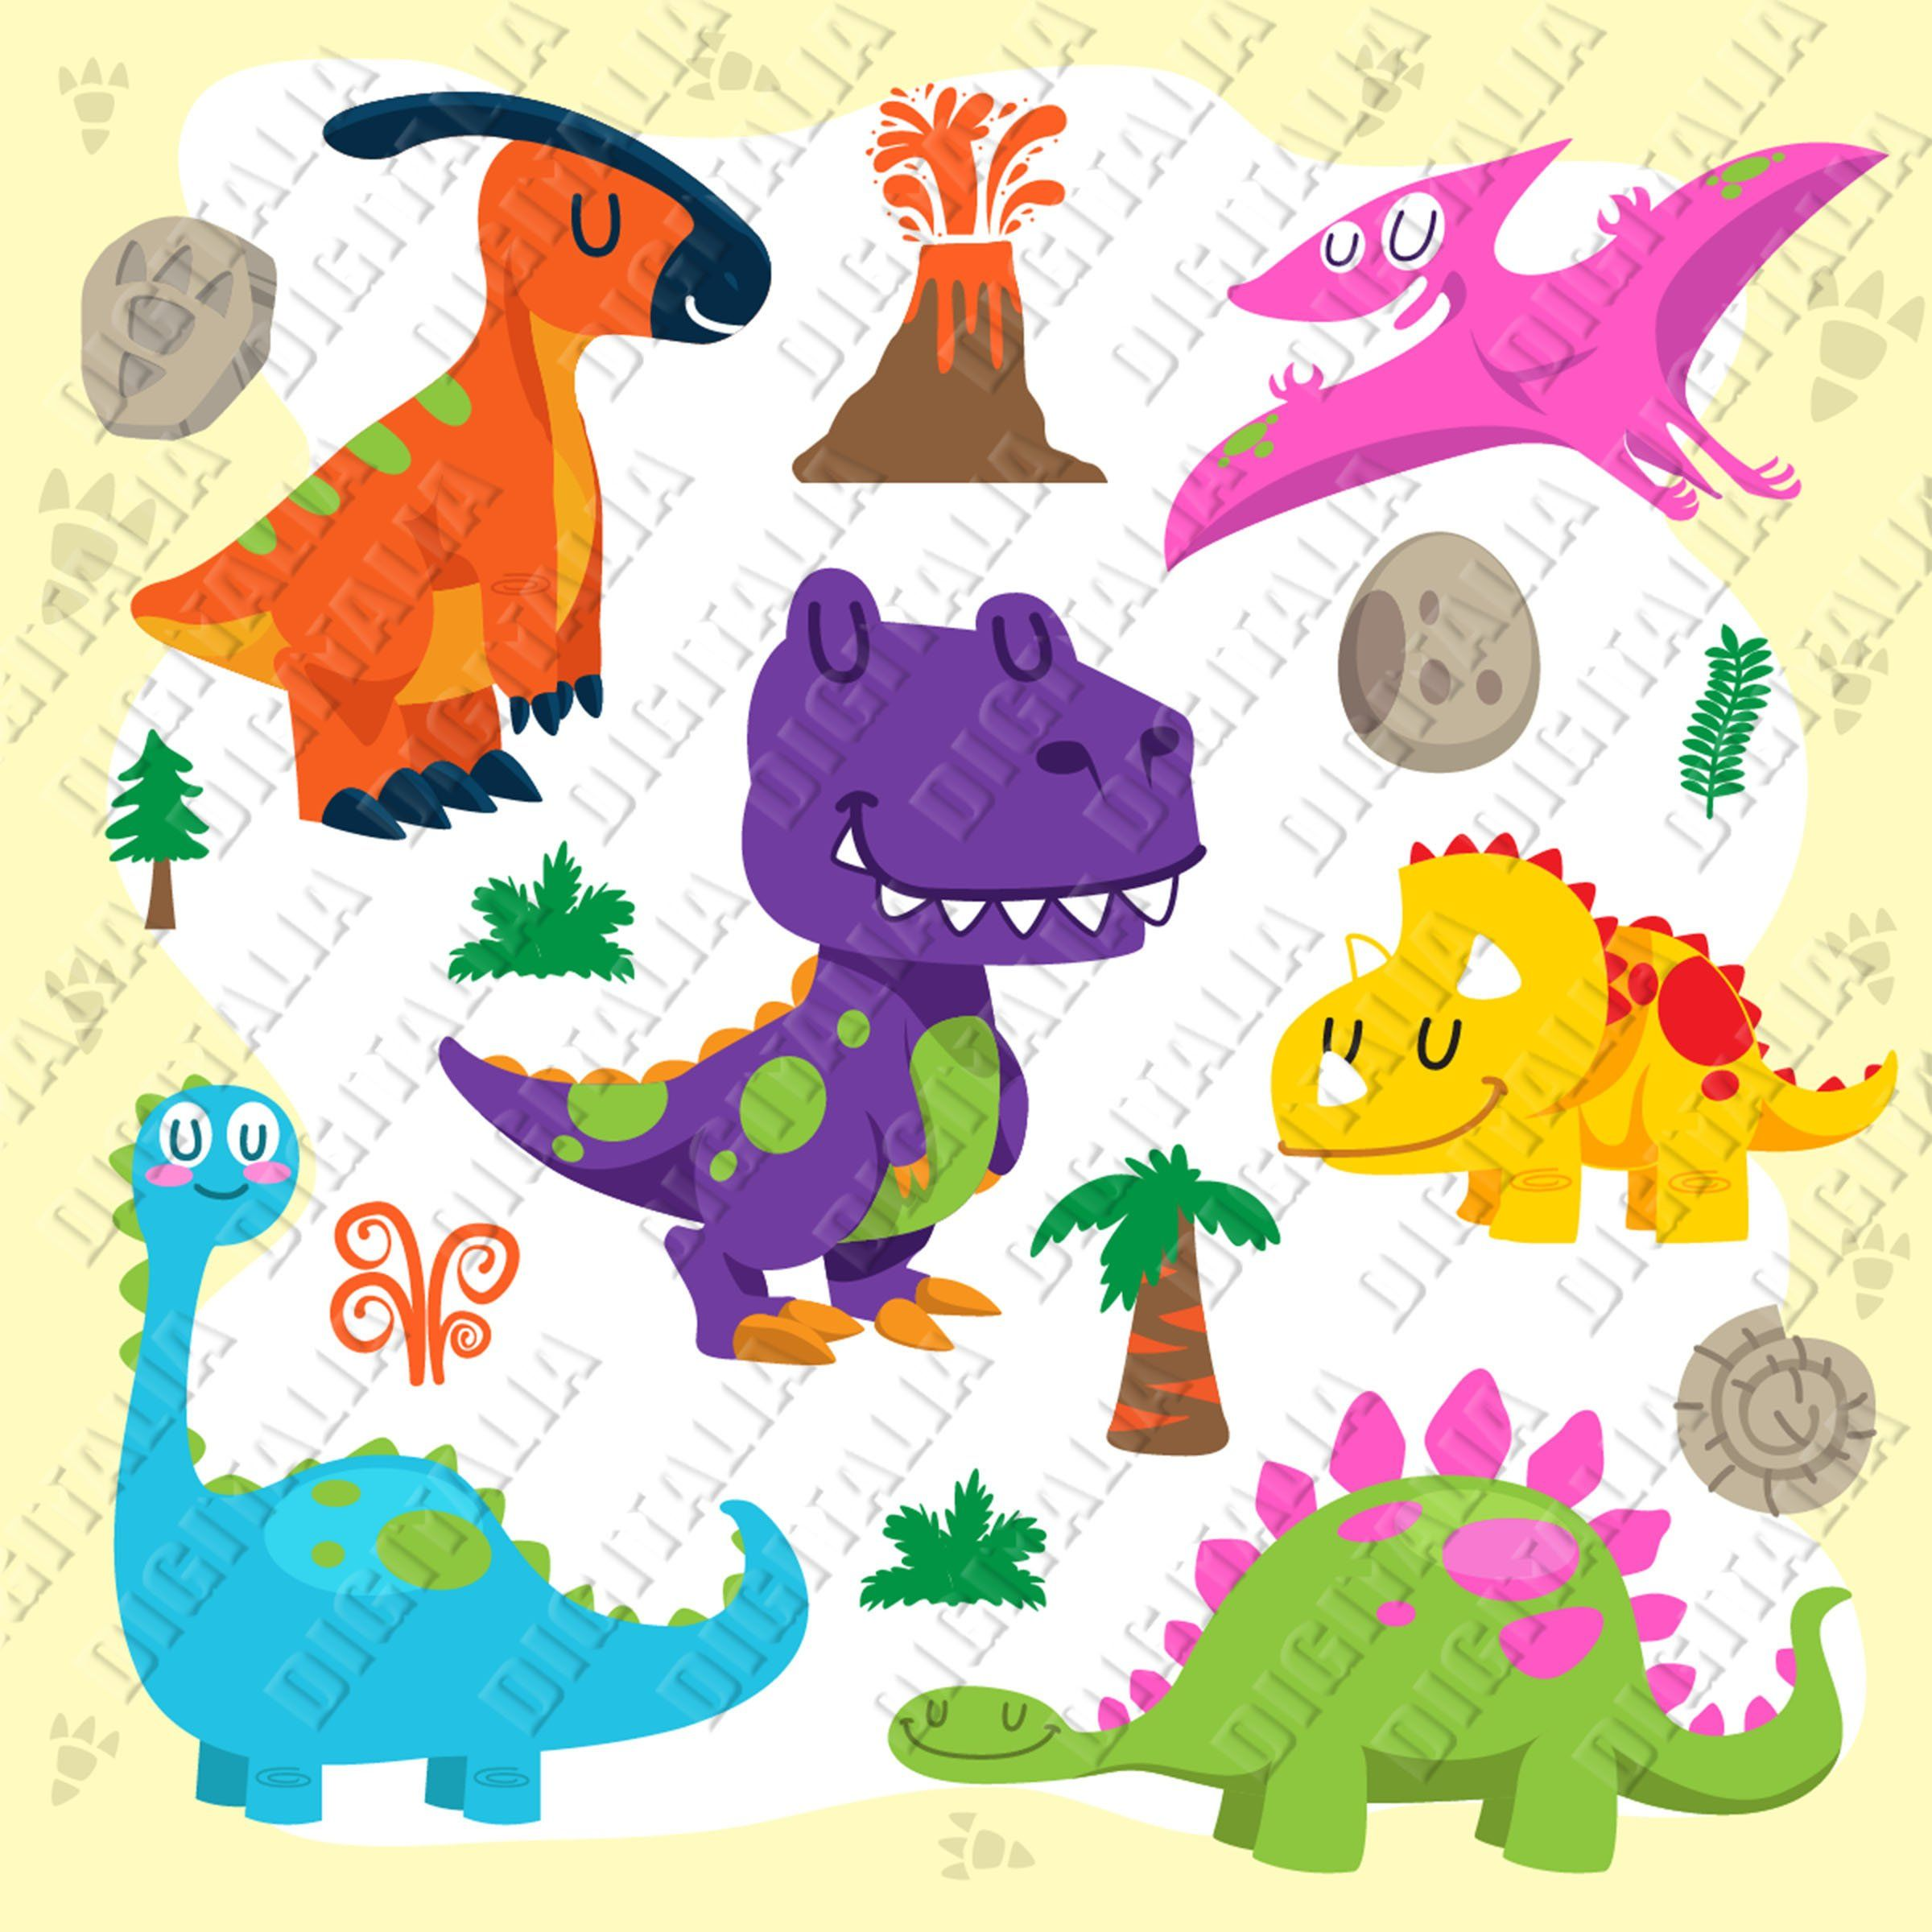 Cute Dinosaur Bandle Clipart Dinosaur Svg Png With Transparent